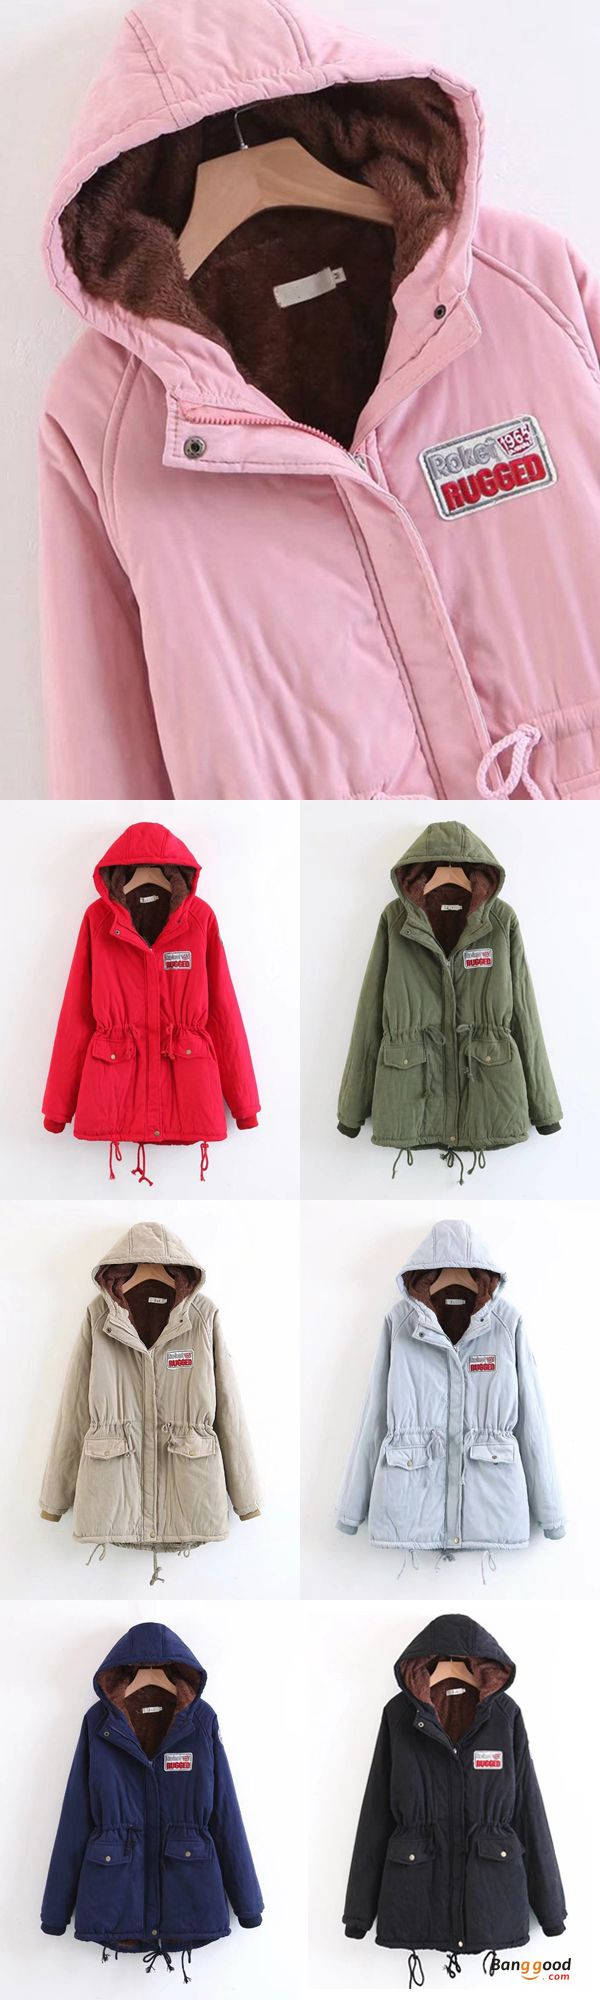 US$56.99 + Free shipping. Size: S~2XL. Color: Army Green, Black, Gray, Khaki, Navy, Pink, Red. Fall in love with casual and cute style! Casual Loose Women Pockets Zipper Fleece Plus Long Sleeve Hooded Coats.